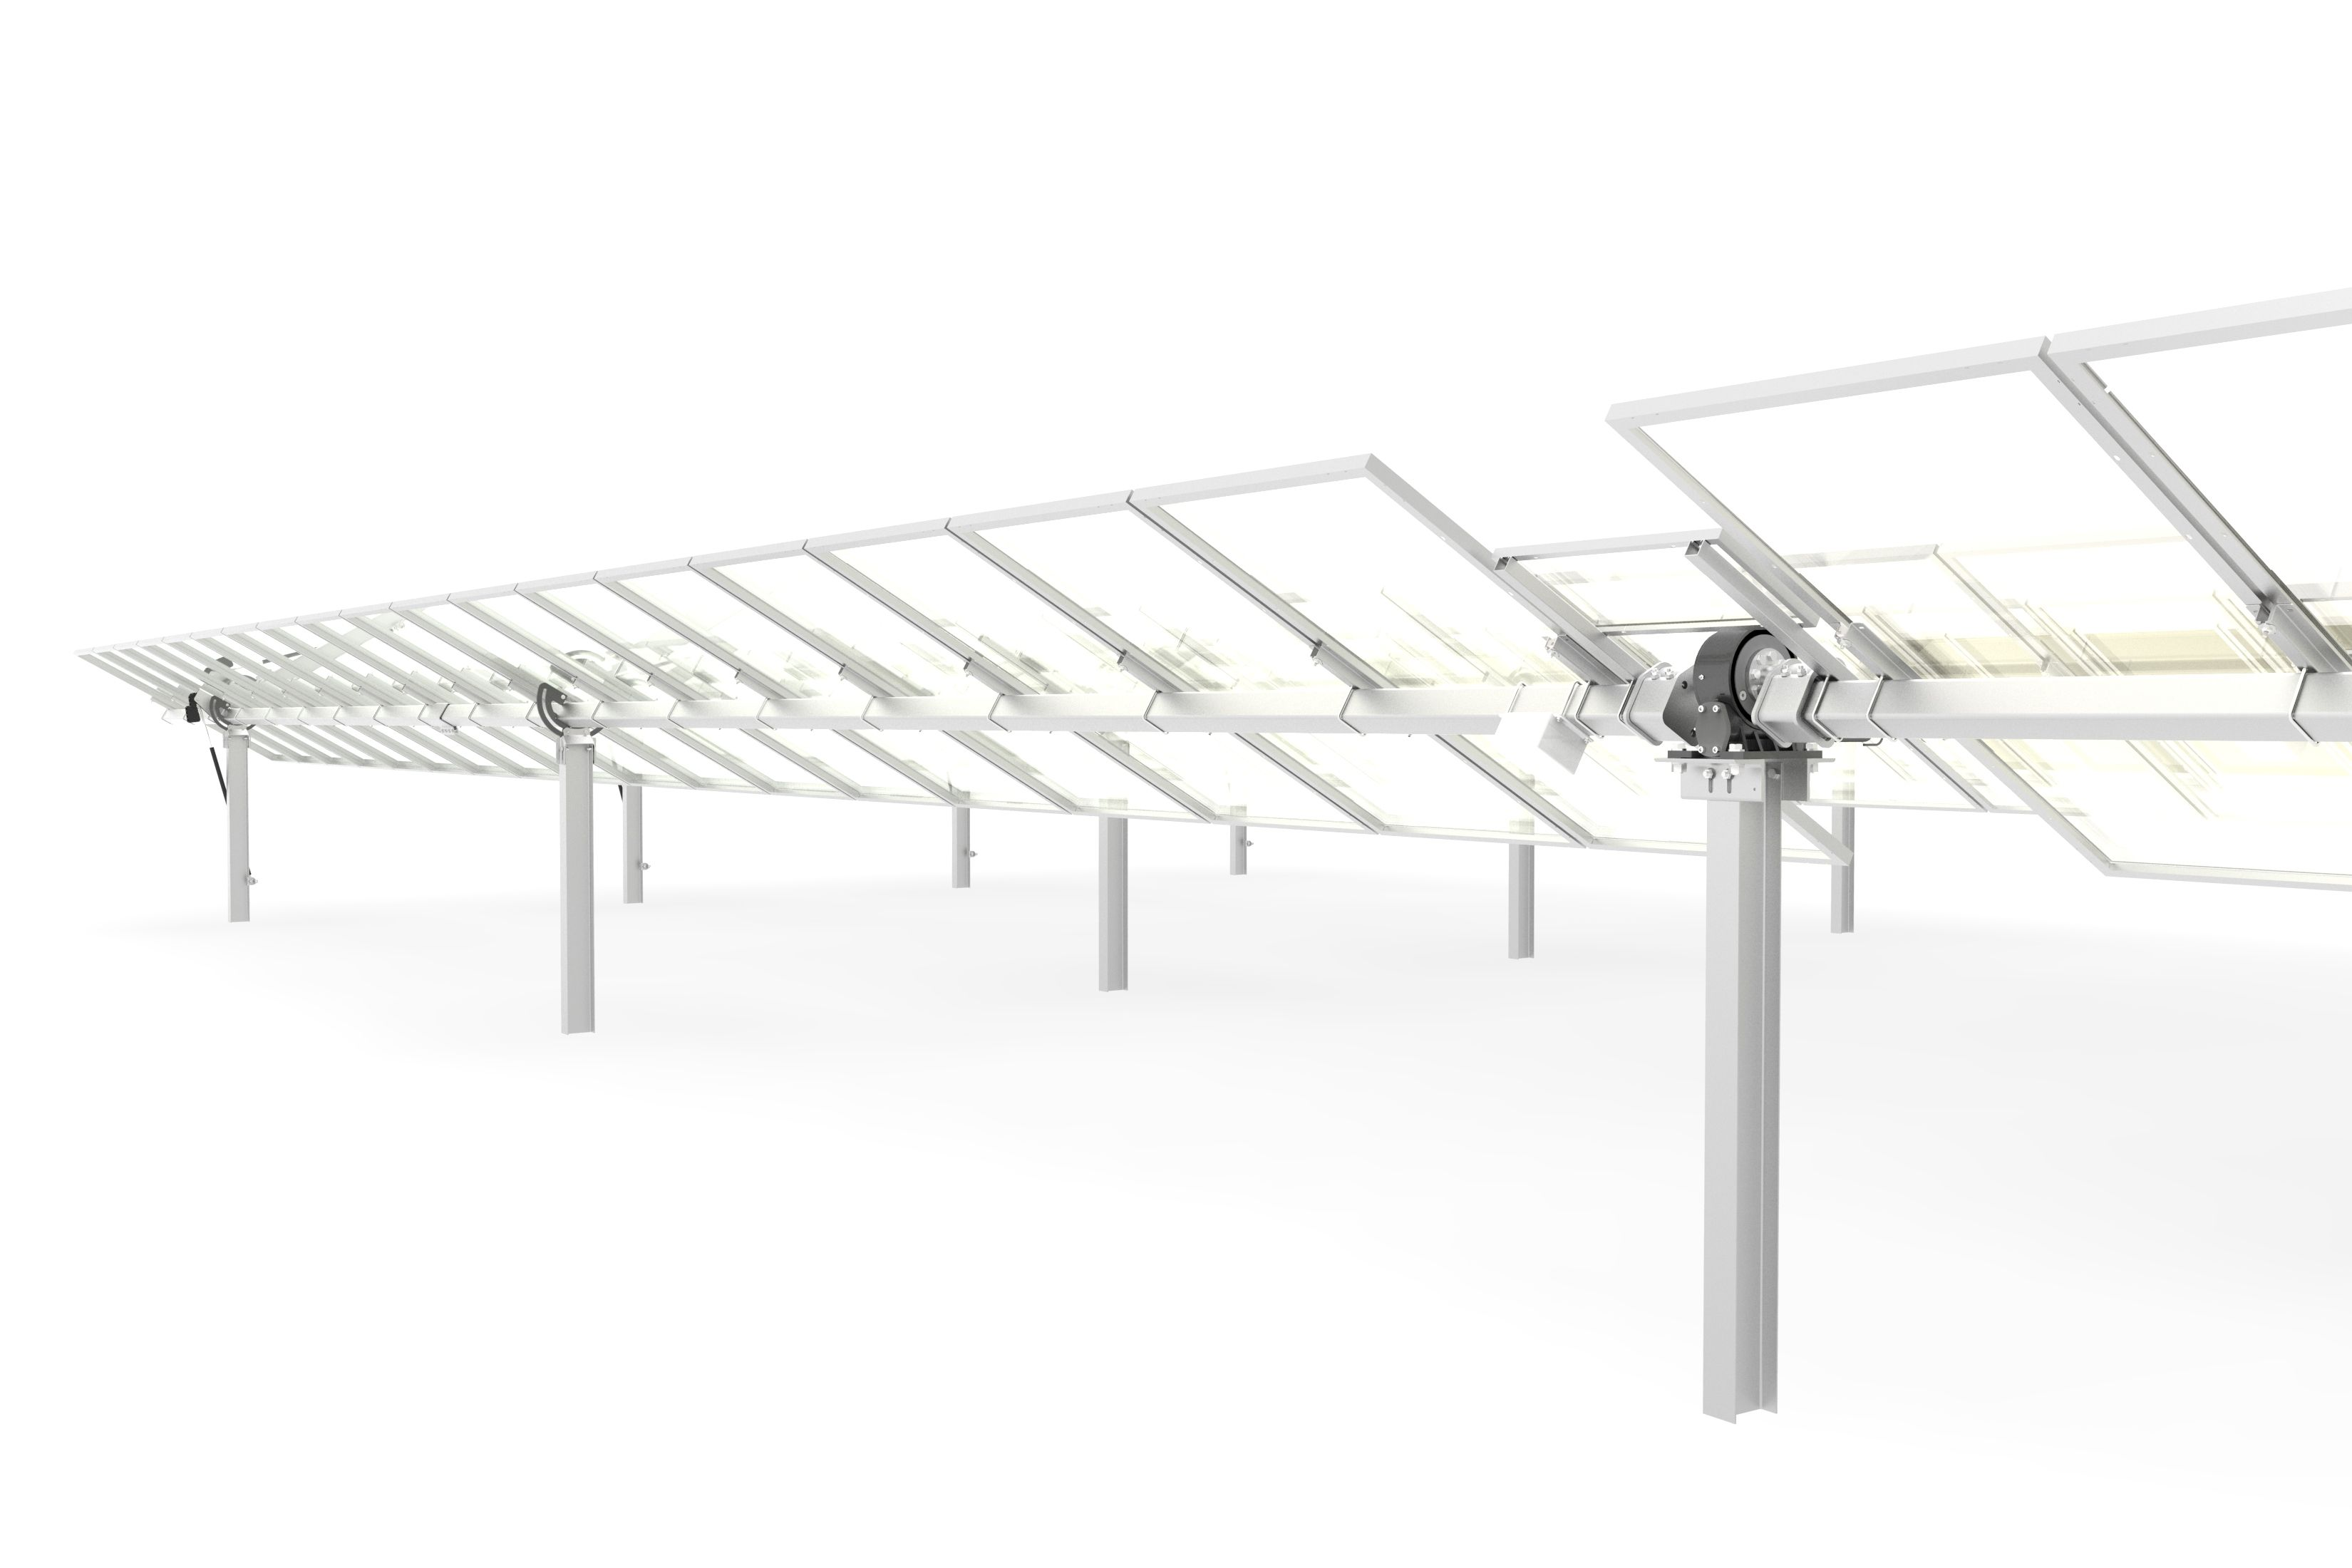 Sunlink Introduces Techtrack Distributed Single Axis Solar